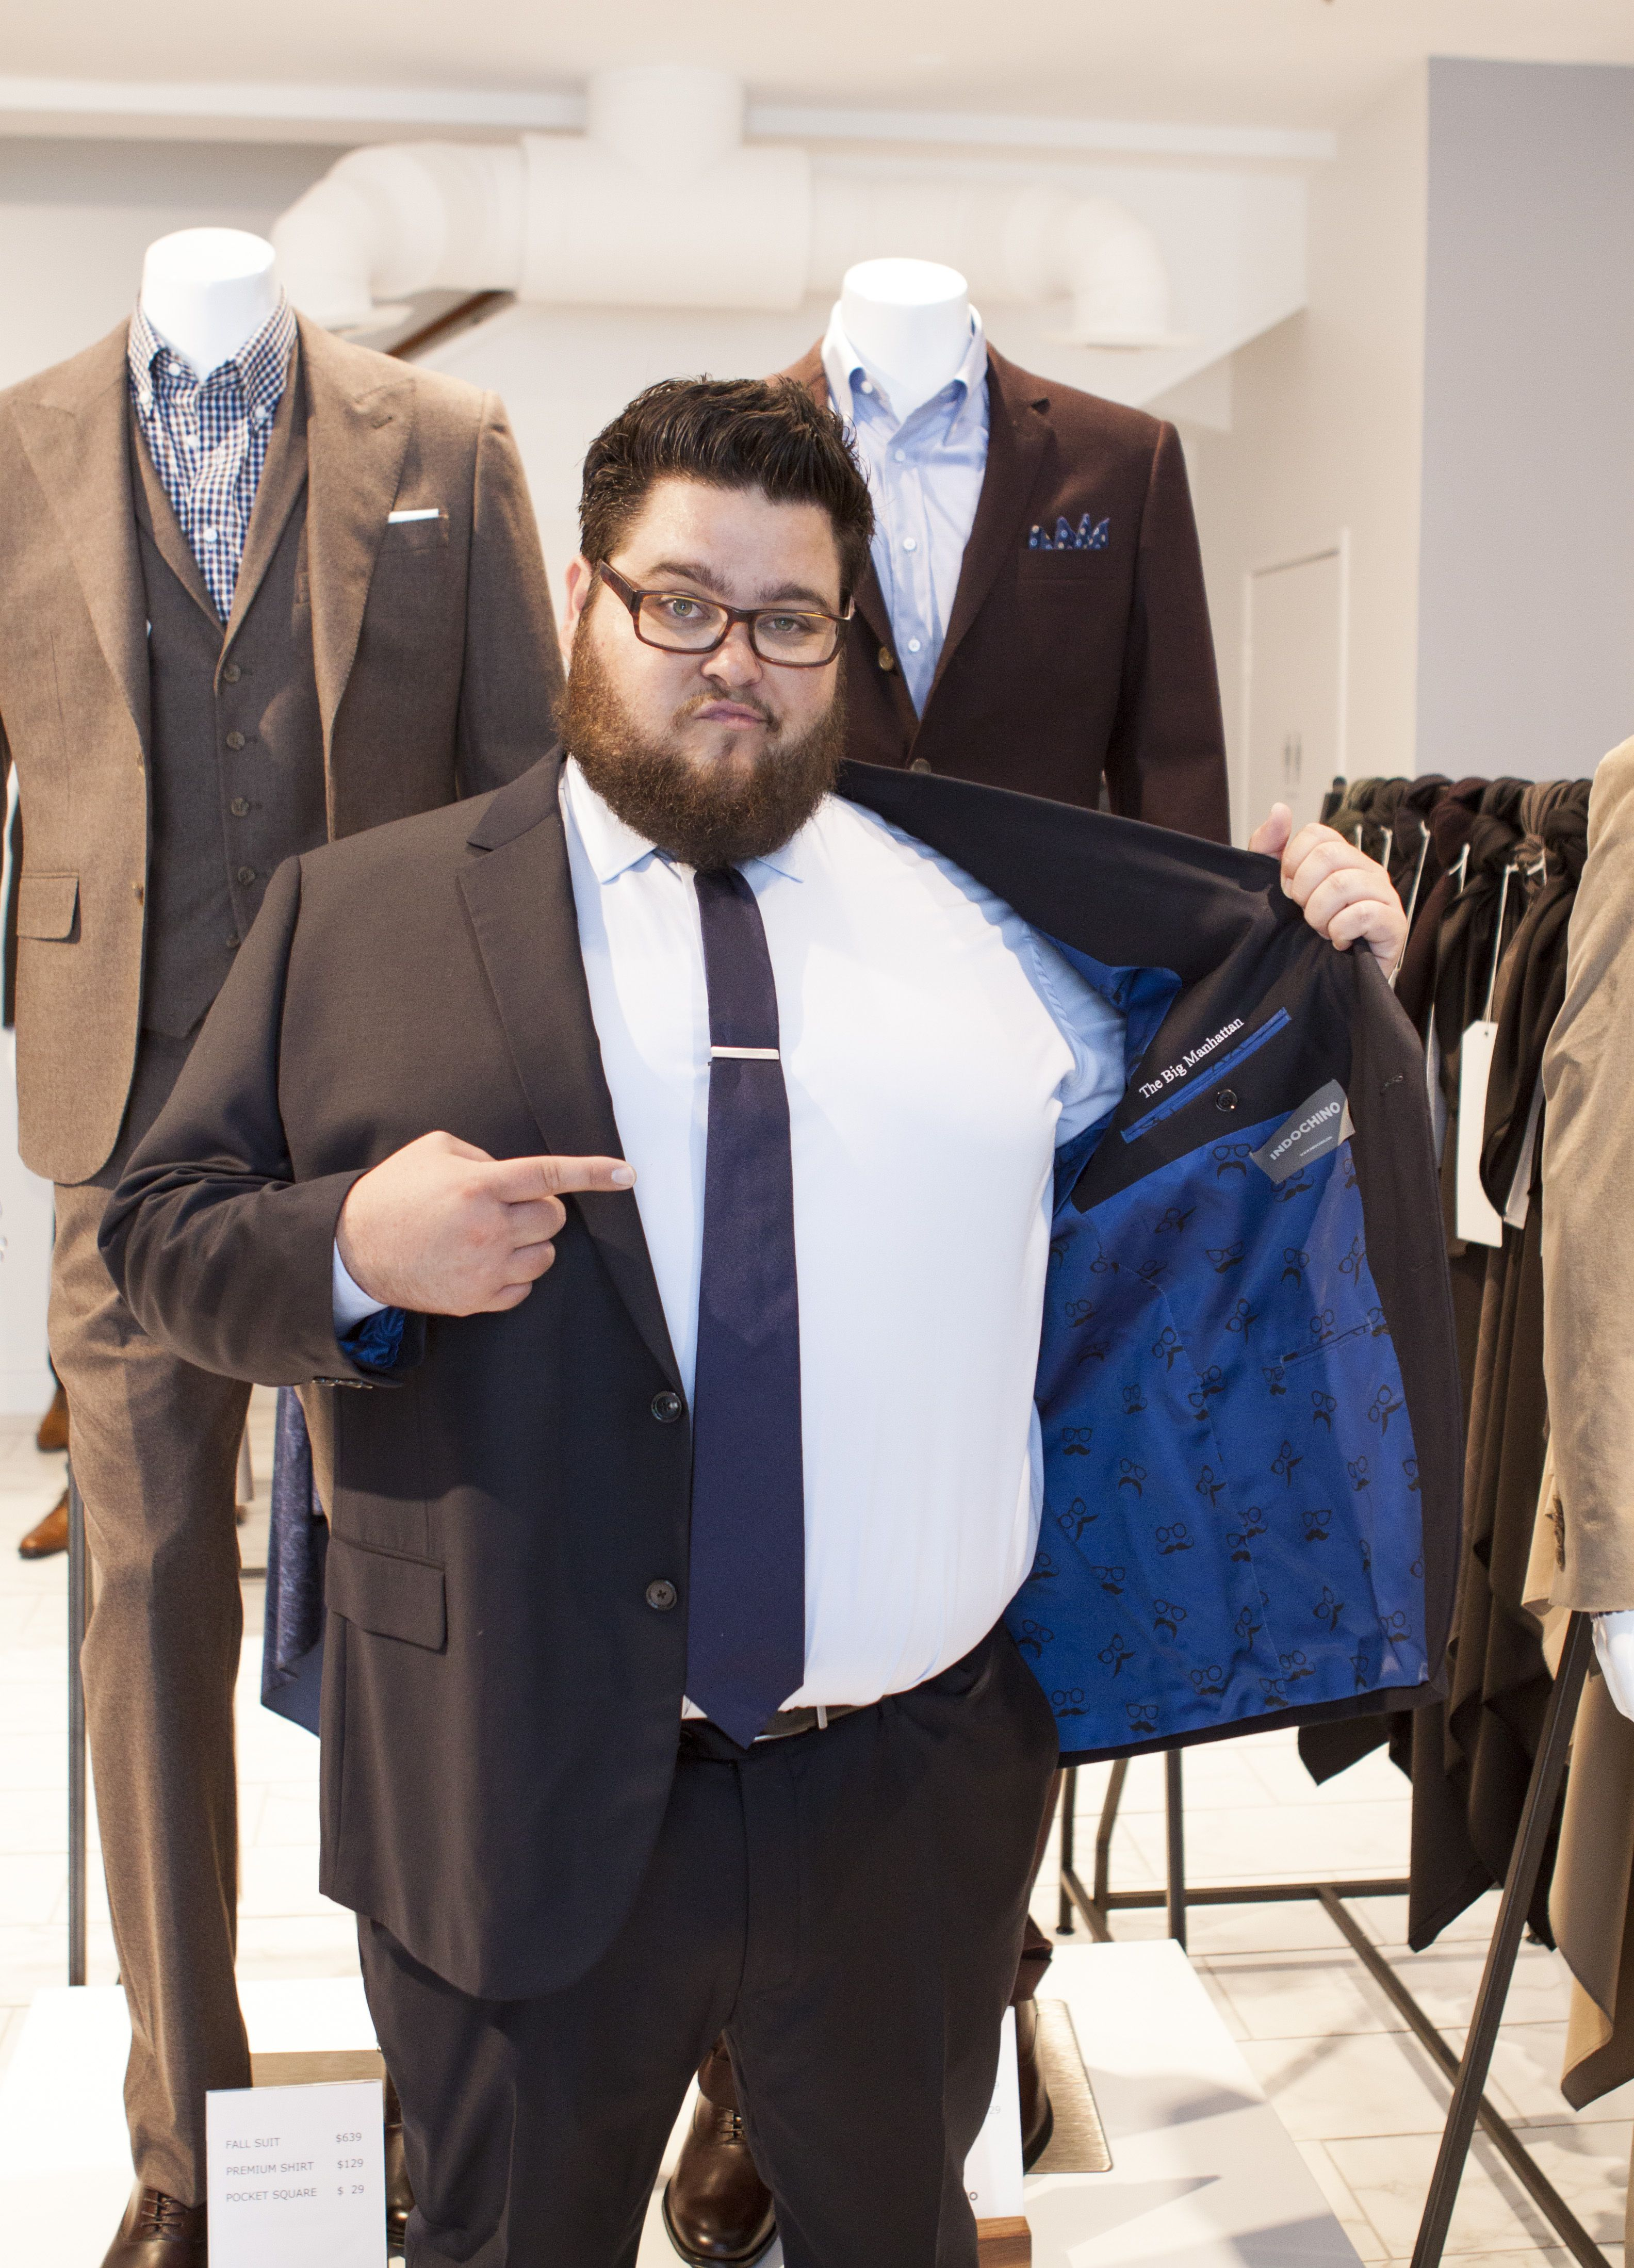 We head to the new Indochino showroom in L.A. to chat with Charley Koontz about fashion, CSI: Cyber, body positivity, and being a good-looking big dude in Hollywood. Read the interview and see more photos: http://chubstr.com/2015/entertainment/charley-koontzs-style-renaissance/